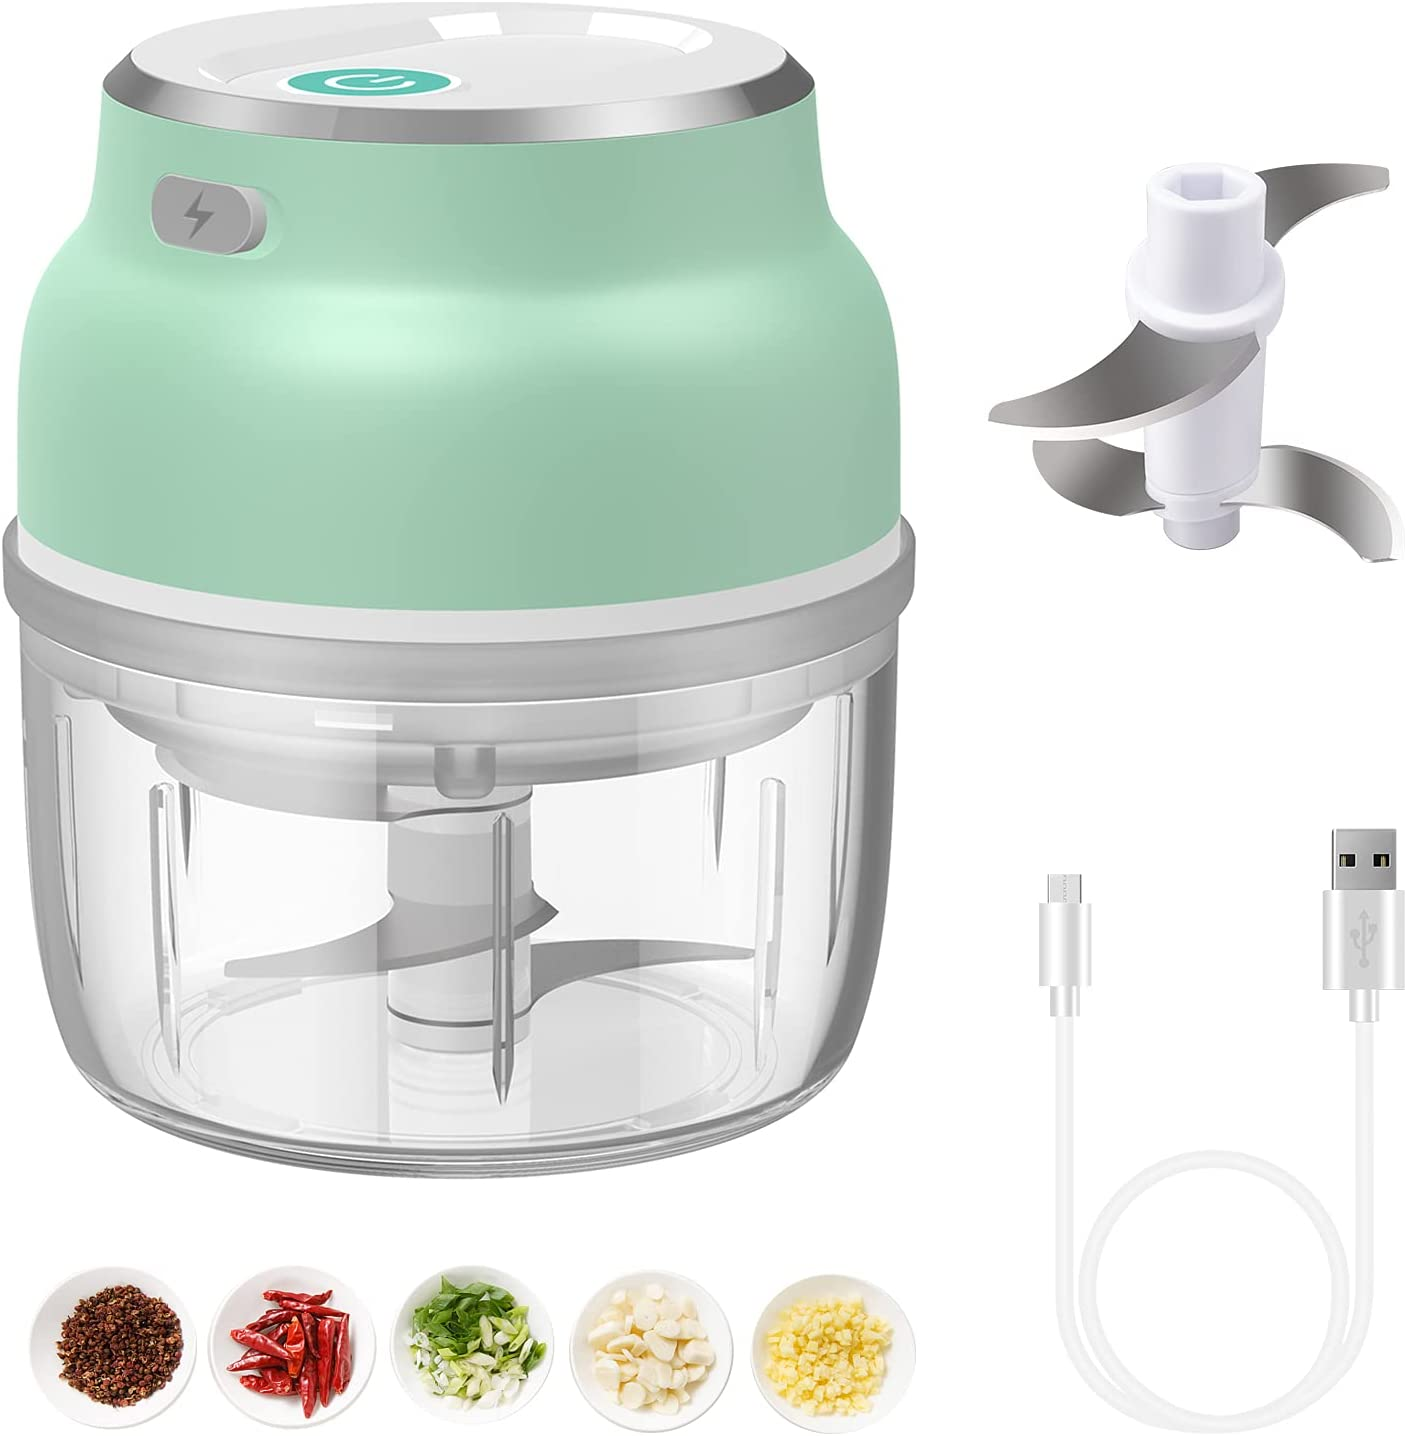 Electric Mini Garlic Chopper,Mini Food Chopper mini food processor 250ml Mini Chopper with Four Blade,Portable and USB Rechargeable Food Processor Mincer for Onions/Nuts/Pepper/Ginger/Salad/Fruits